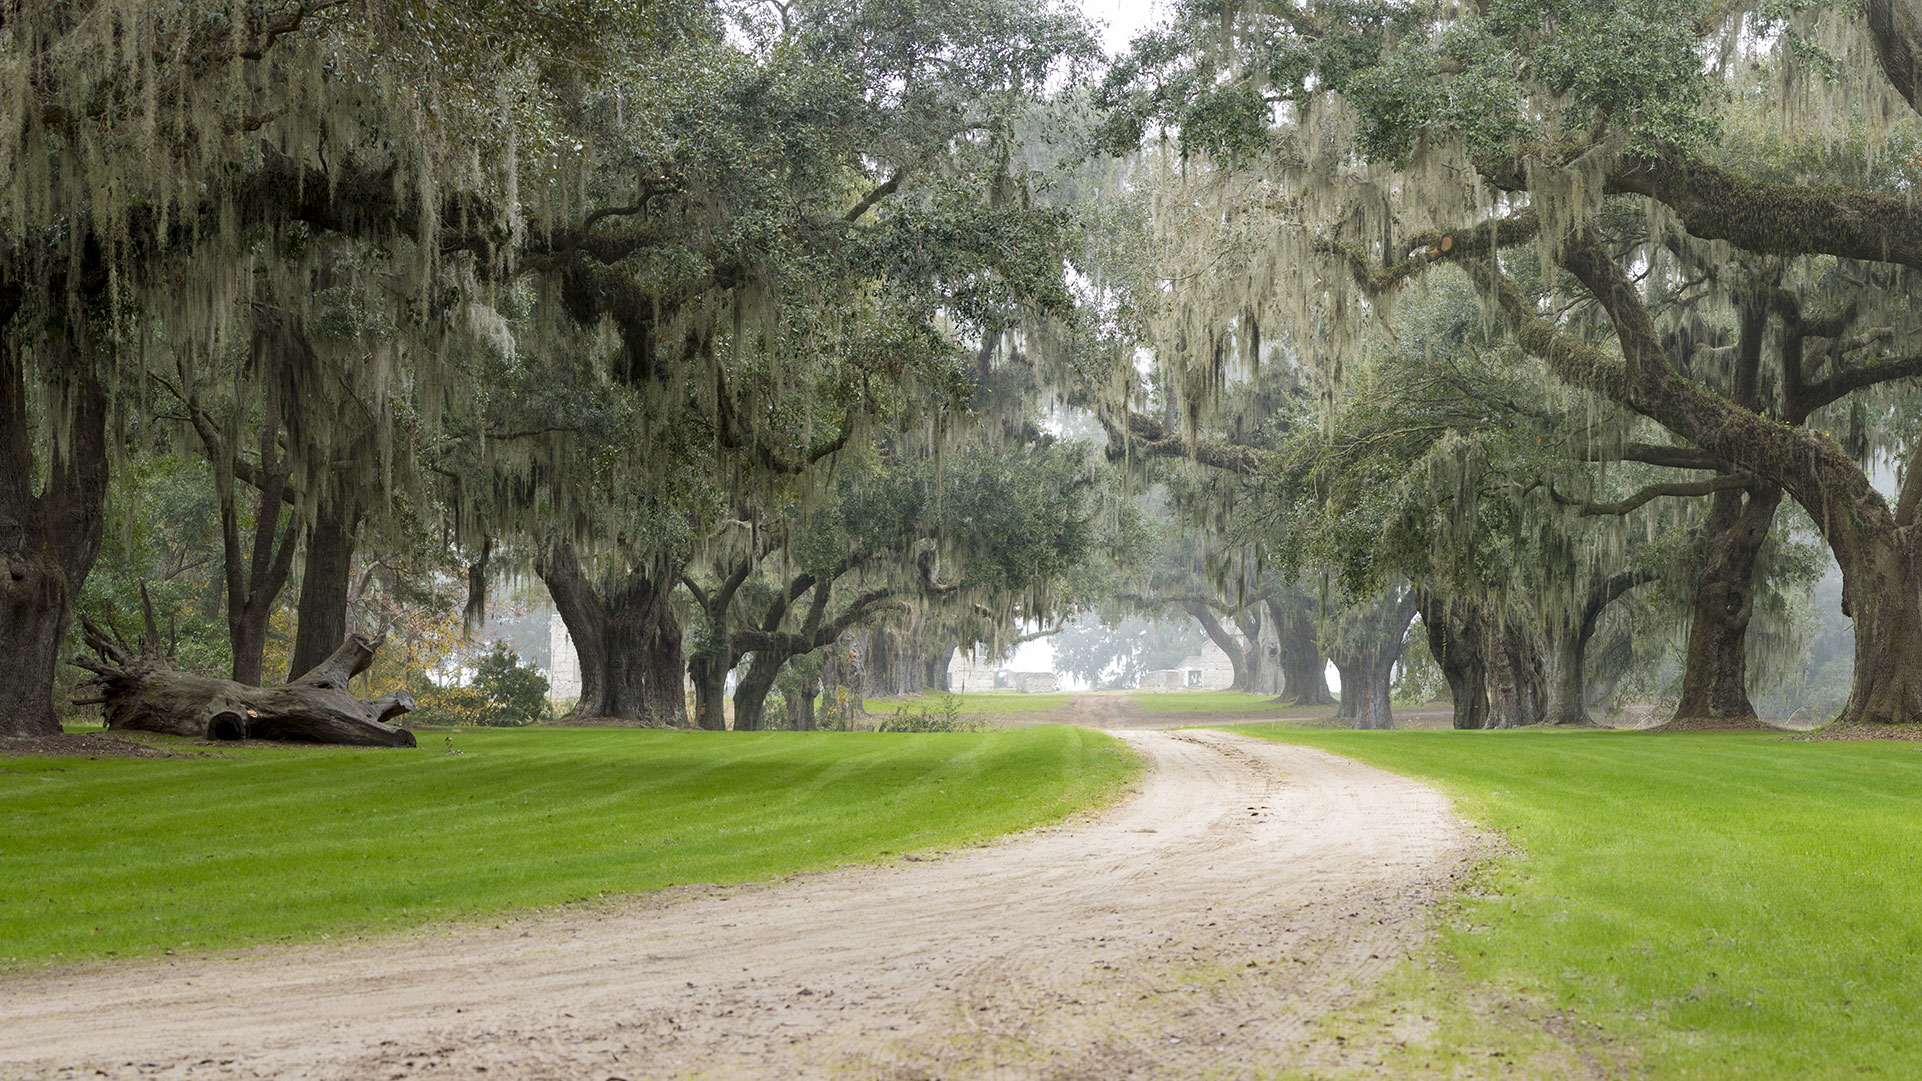 Oaks along a plantation road in North Florida